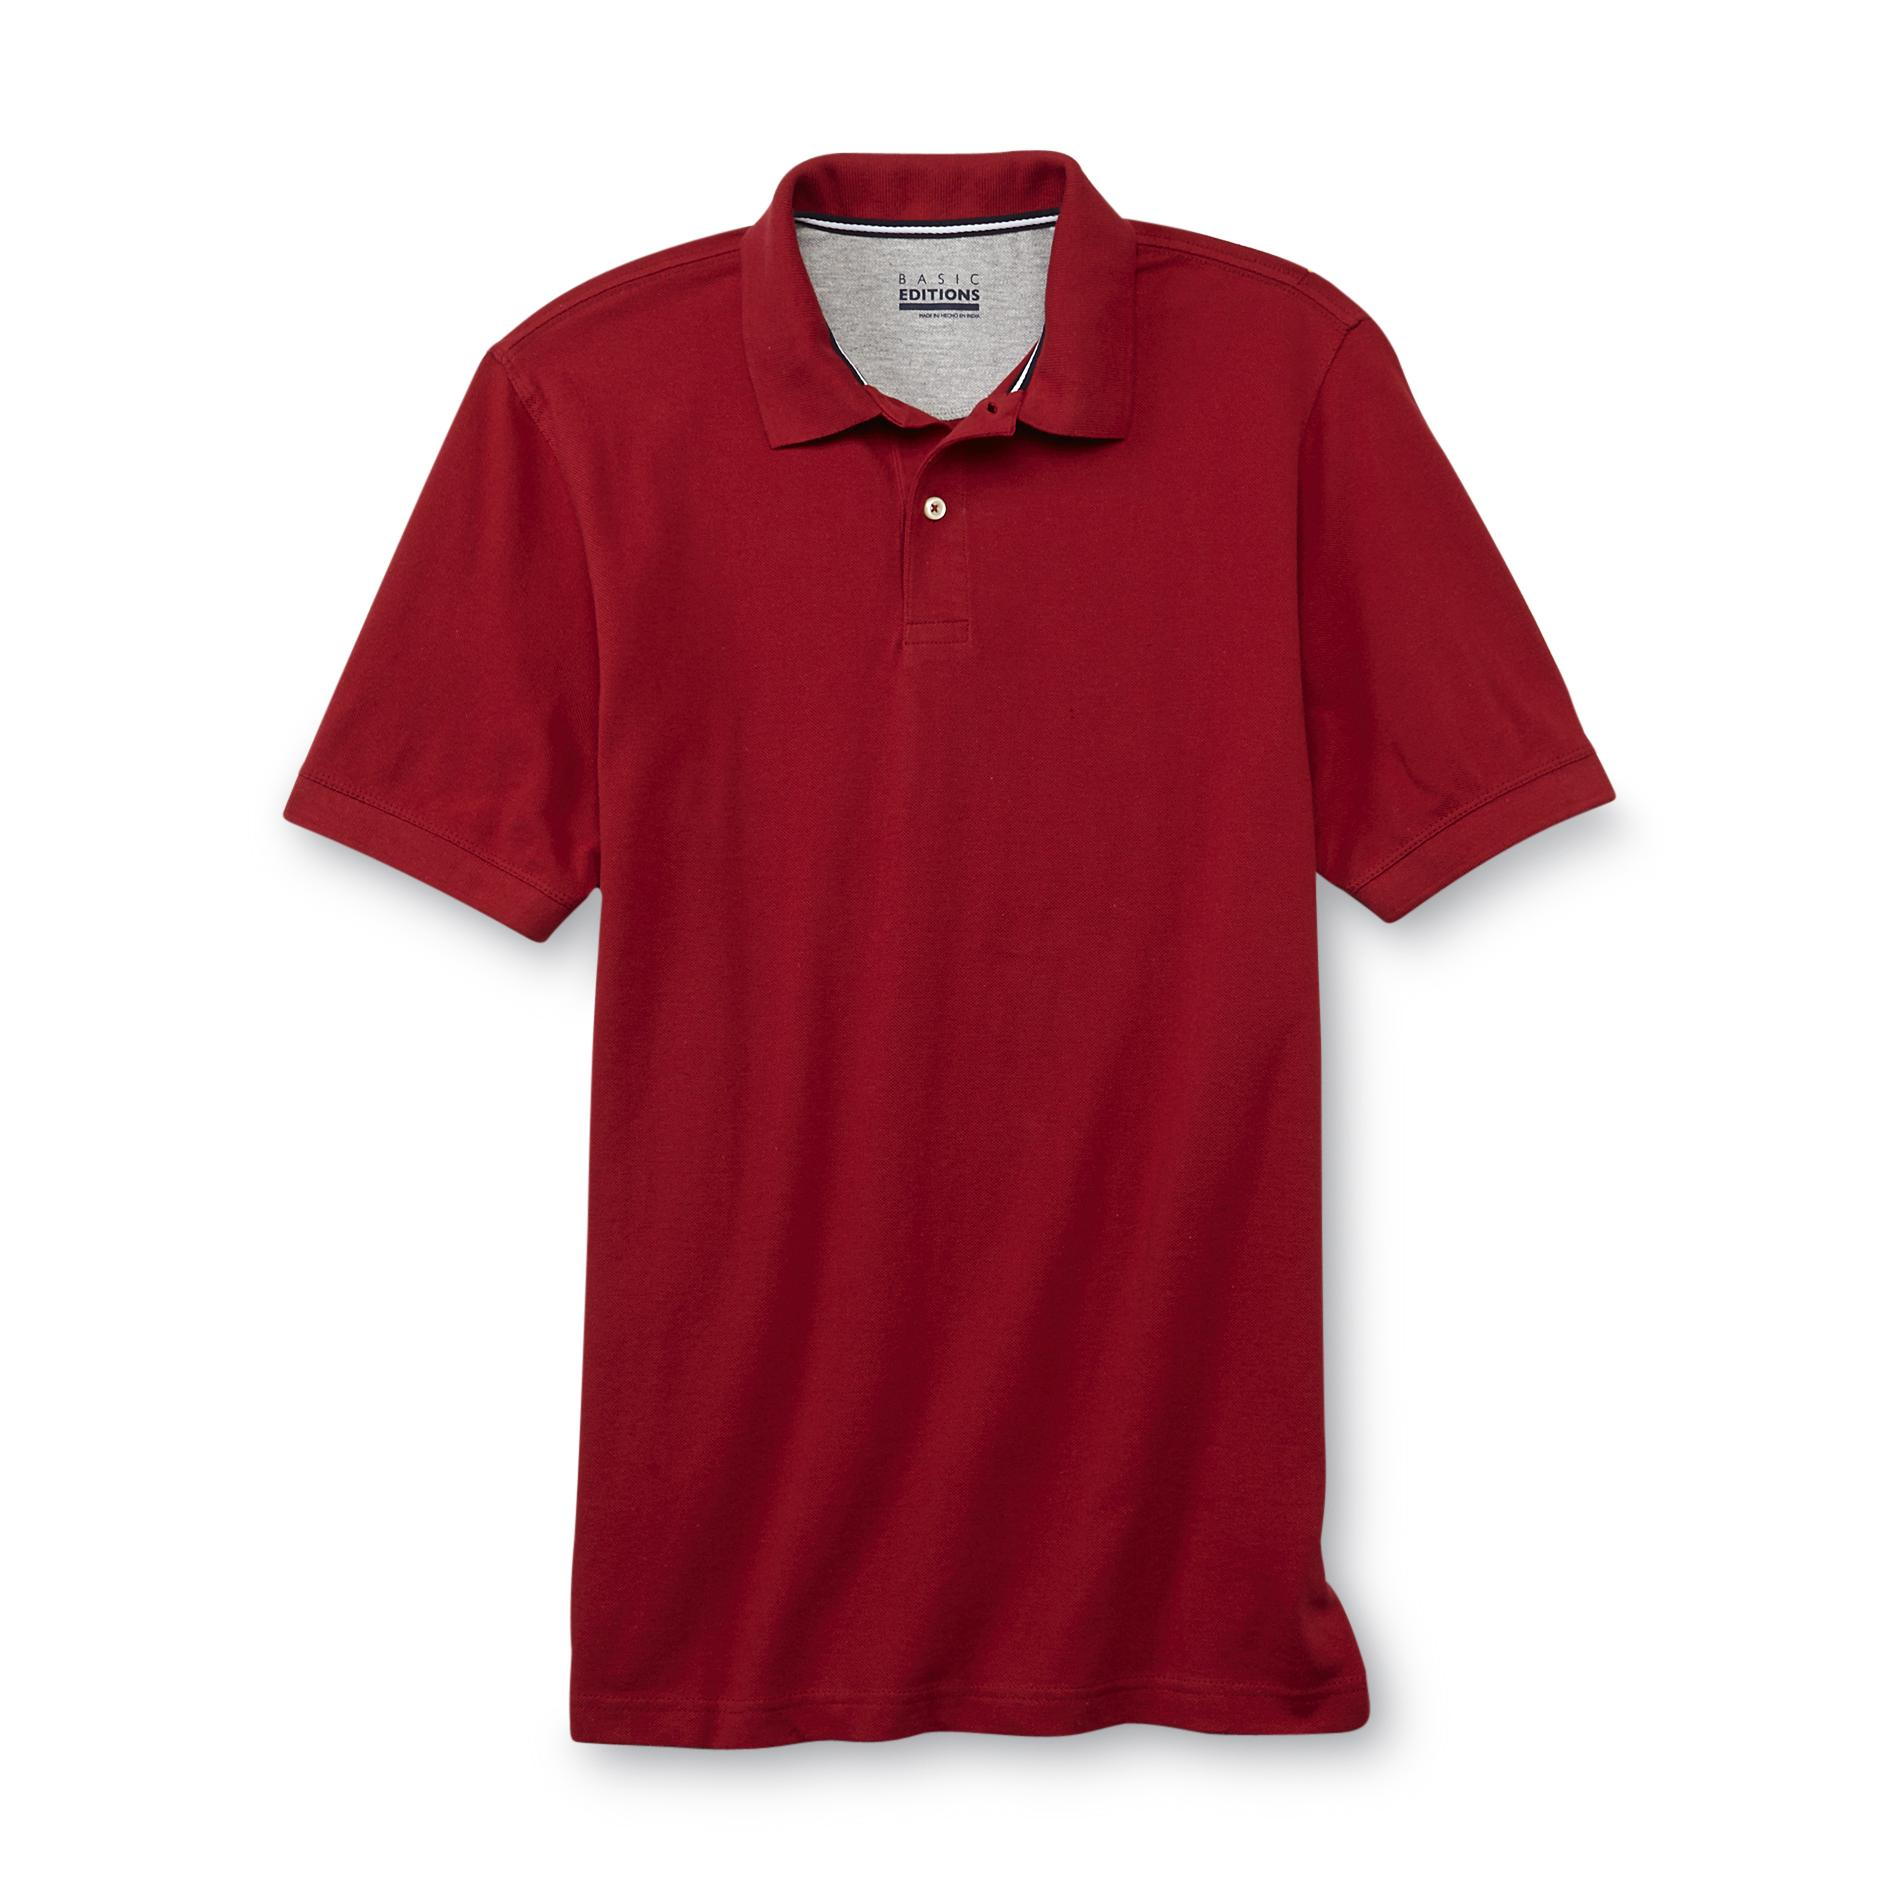 Basic Editions  Men's Big & Tall Polo Shirt